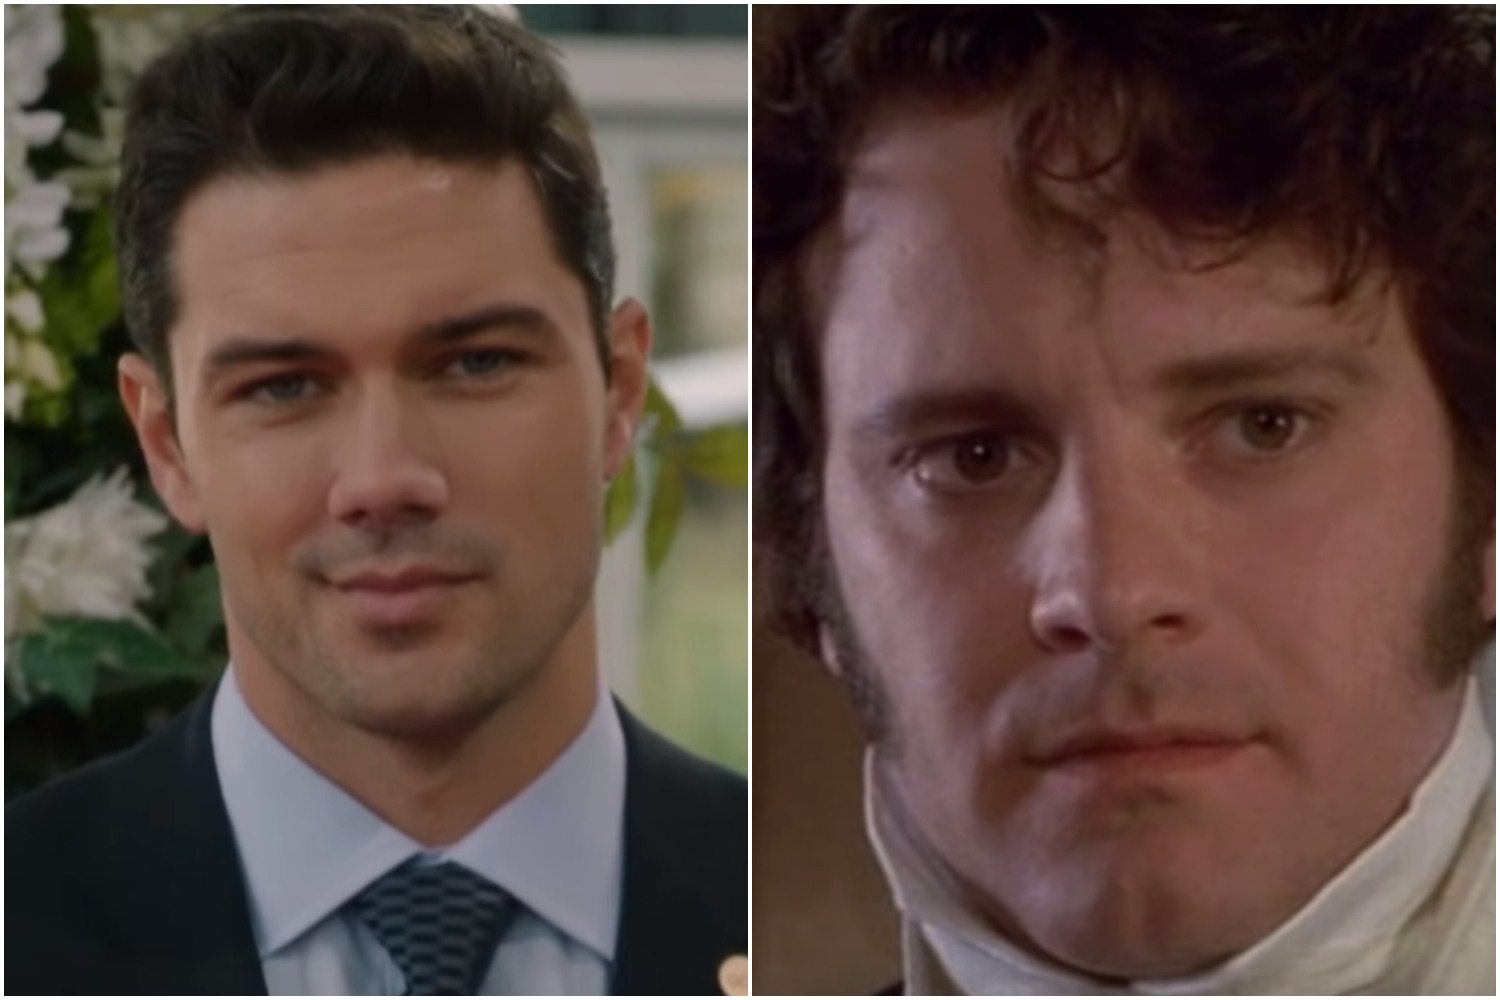 Ryan Paevey, Donovan Darcy, Unleashing Mr. Darcy-https://www.youtube.com/watch?v=aT0o_k54Y6M, Colin Firth, Darcy, Pride and Prejudice-https://www.youtube.com/watch?v=JF3ueHjUc3k